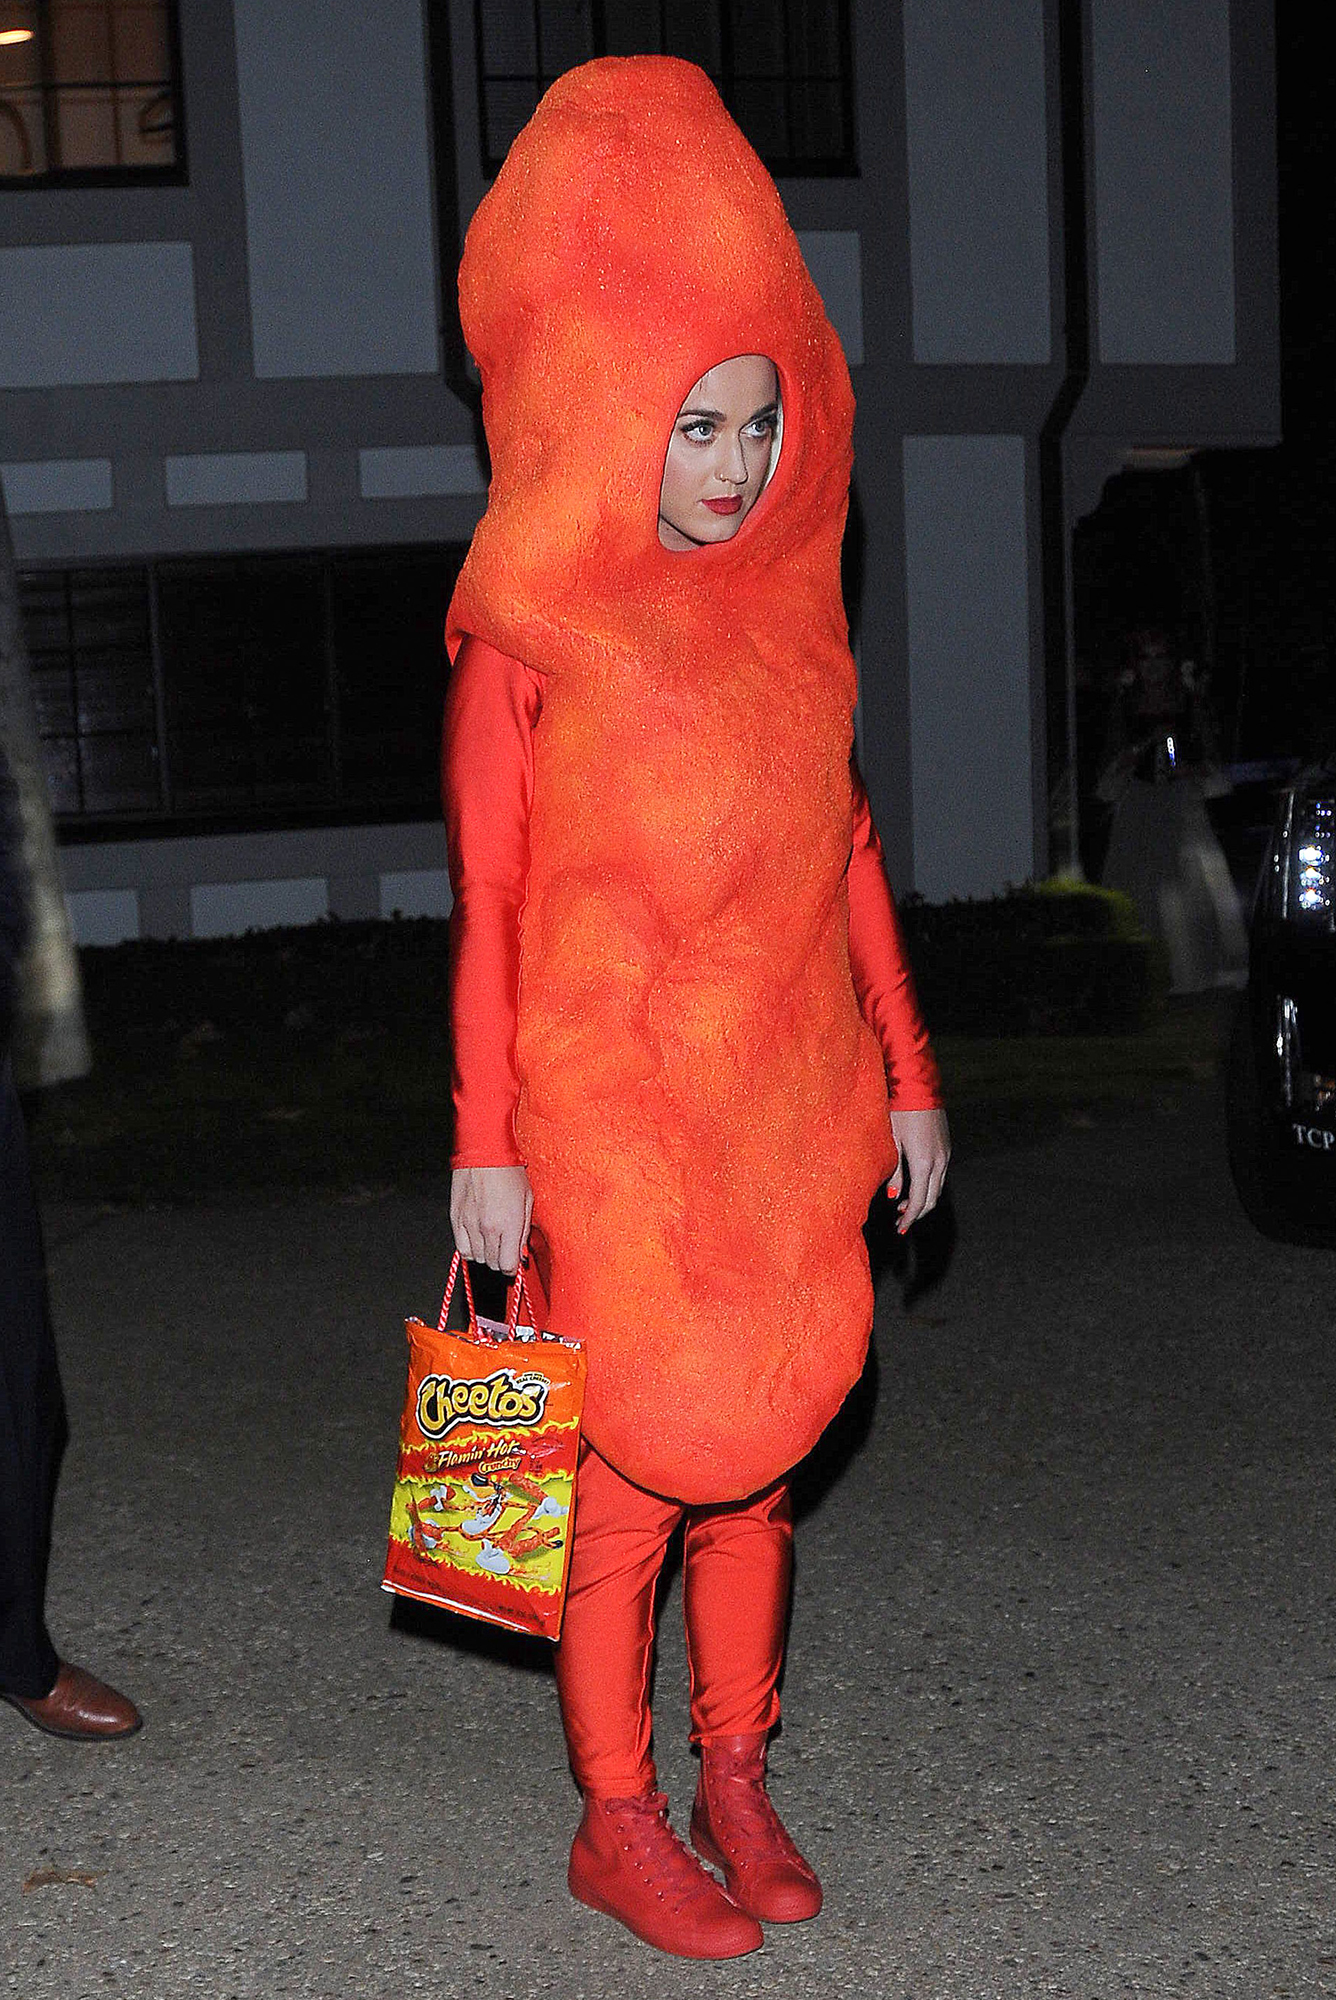 Katy Perry Dressed as Food - The California native dressed up like a Cheeto for Kate Hudson's annual Halloween party in 2014. Her orange outfit included a purse made out of a Cheetos bag.